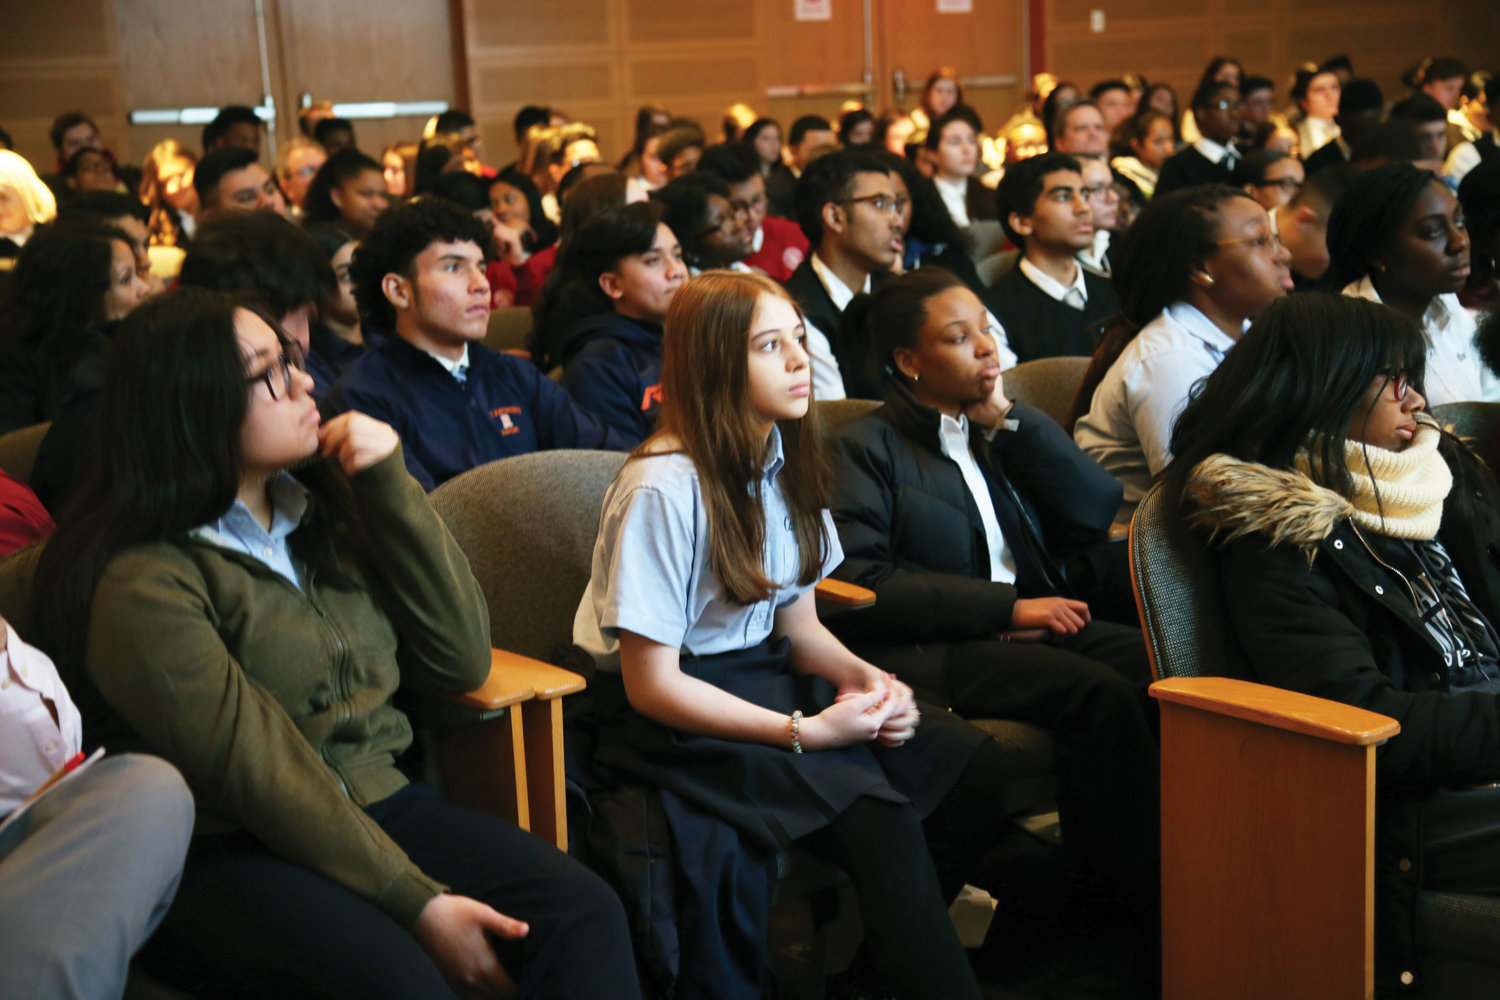 Some of the 240 students from 31 Catholic schools in the archdiocese listen to the speakers.